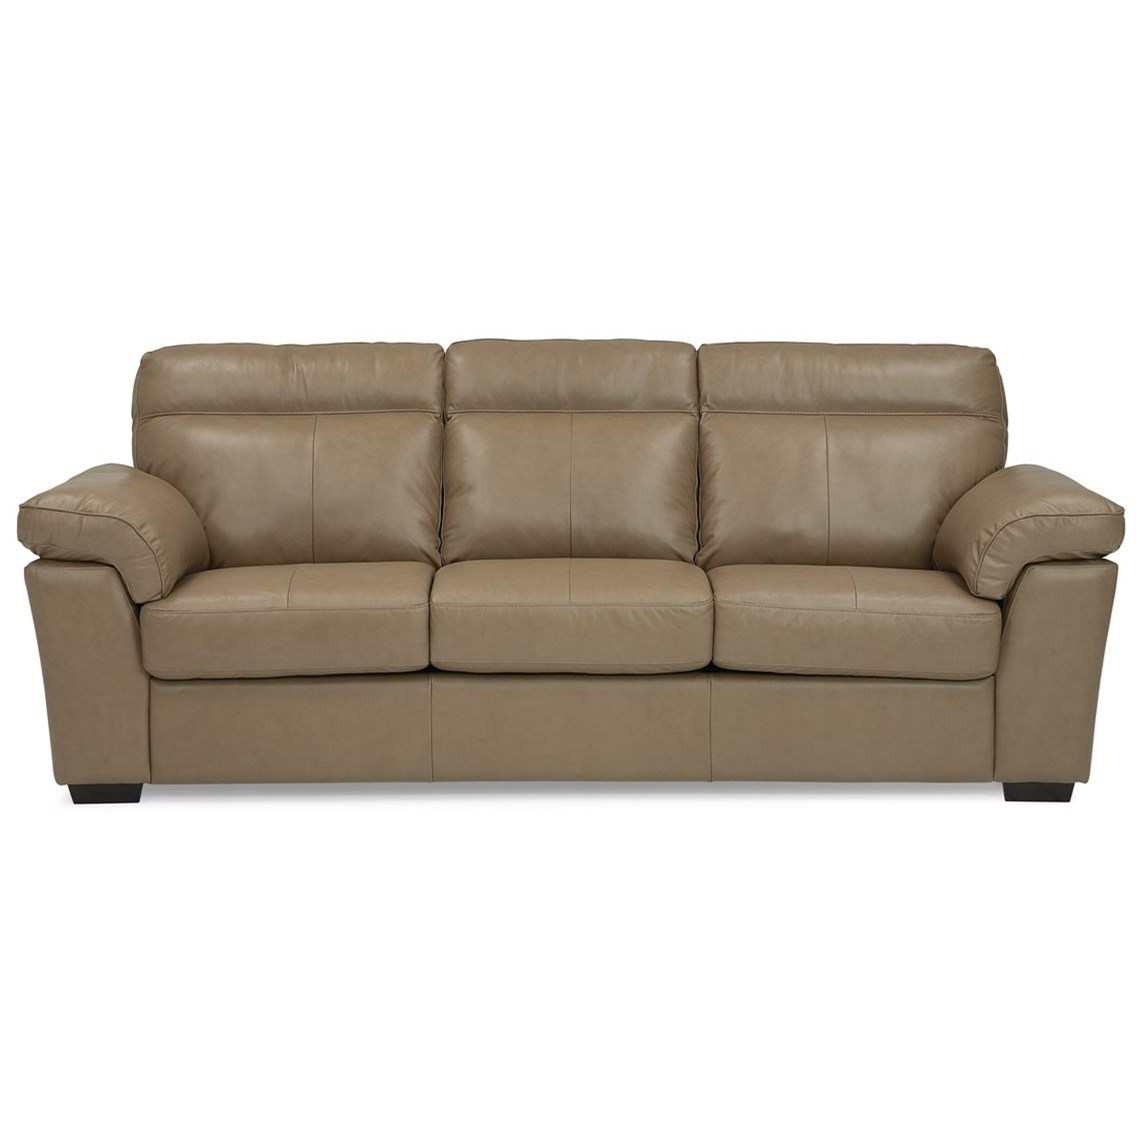 Palliser Kingston Casual Queen Sofa Bed with Pillow Arms ...